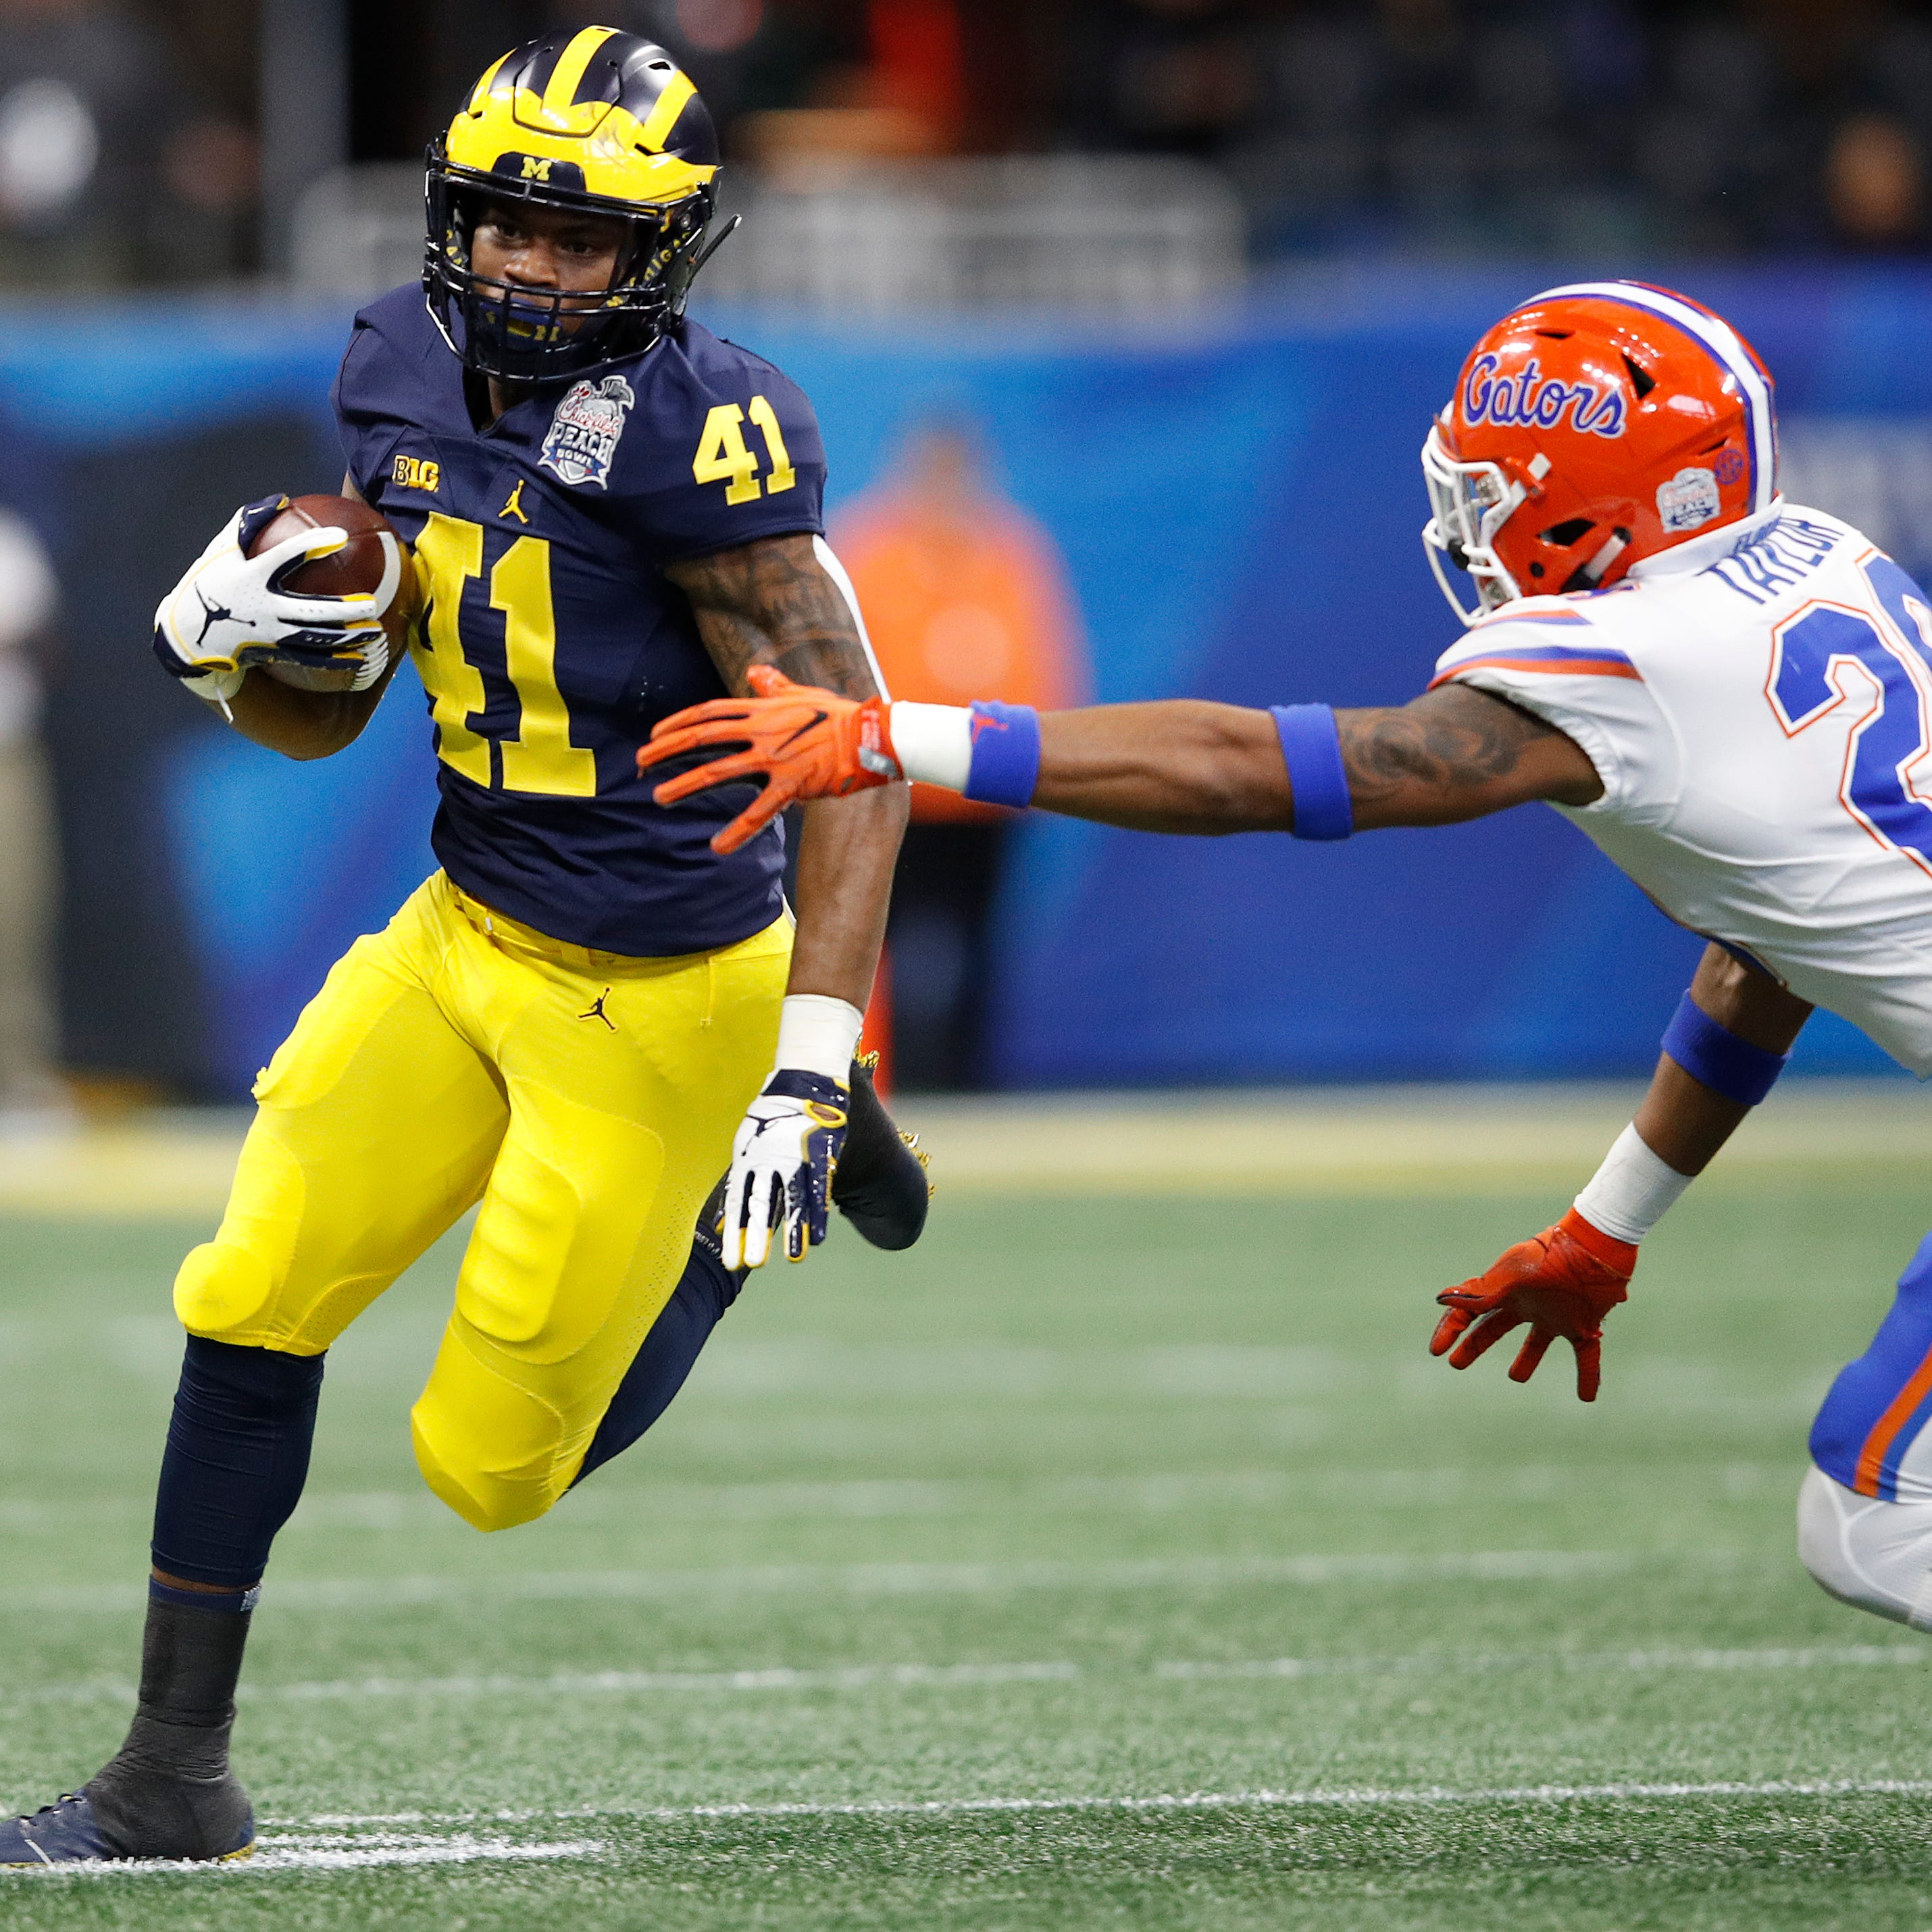 Michigan football's Jim Harbaugh: Christian Turner 'a rising player'